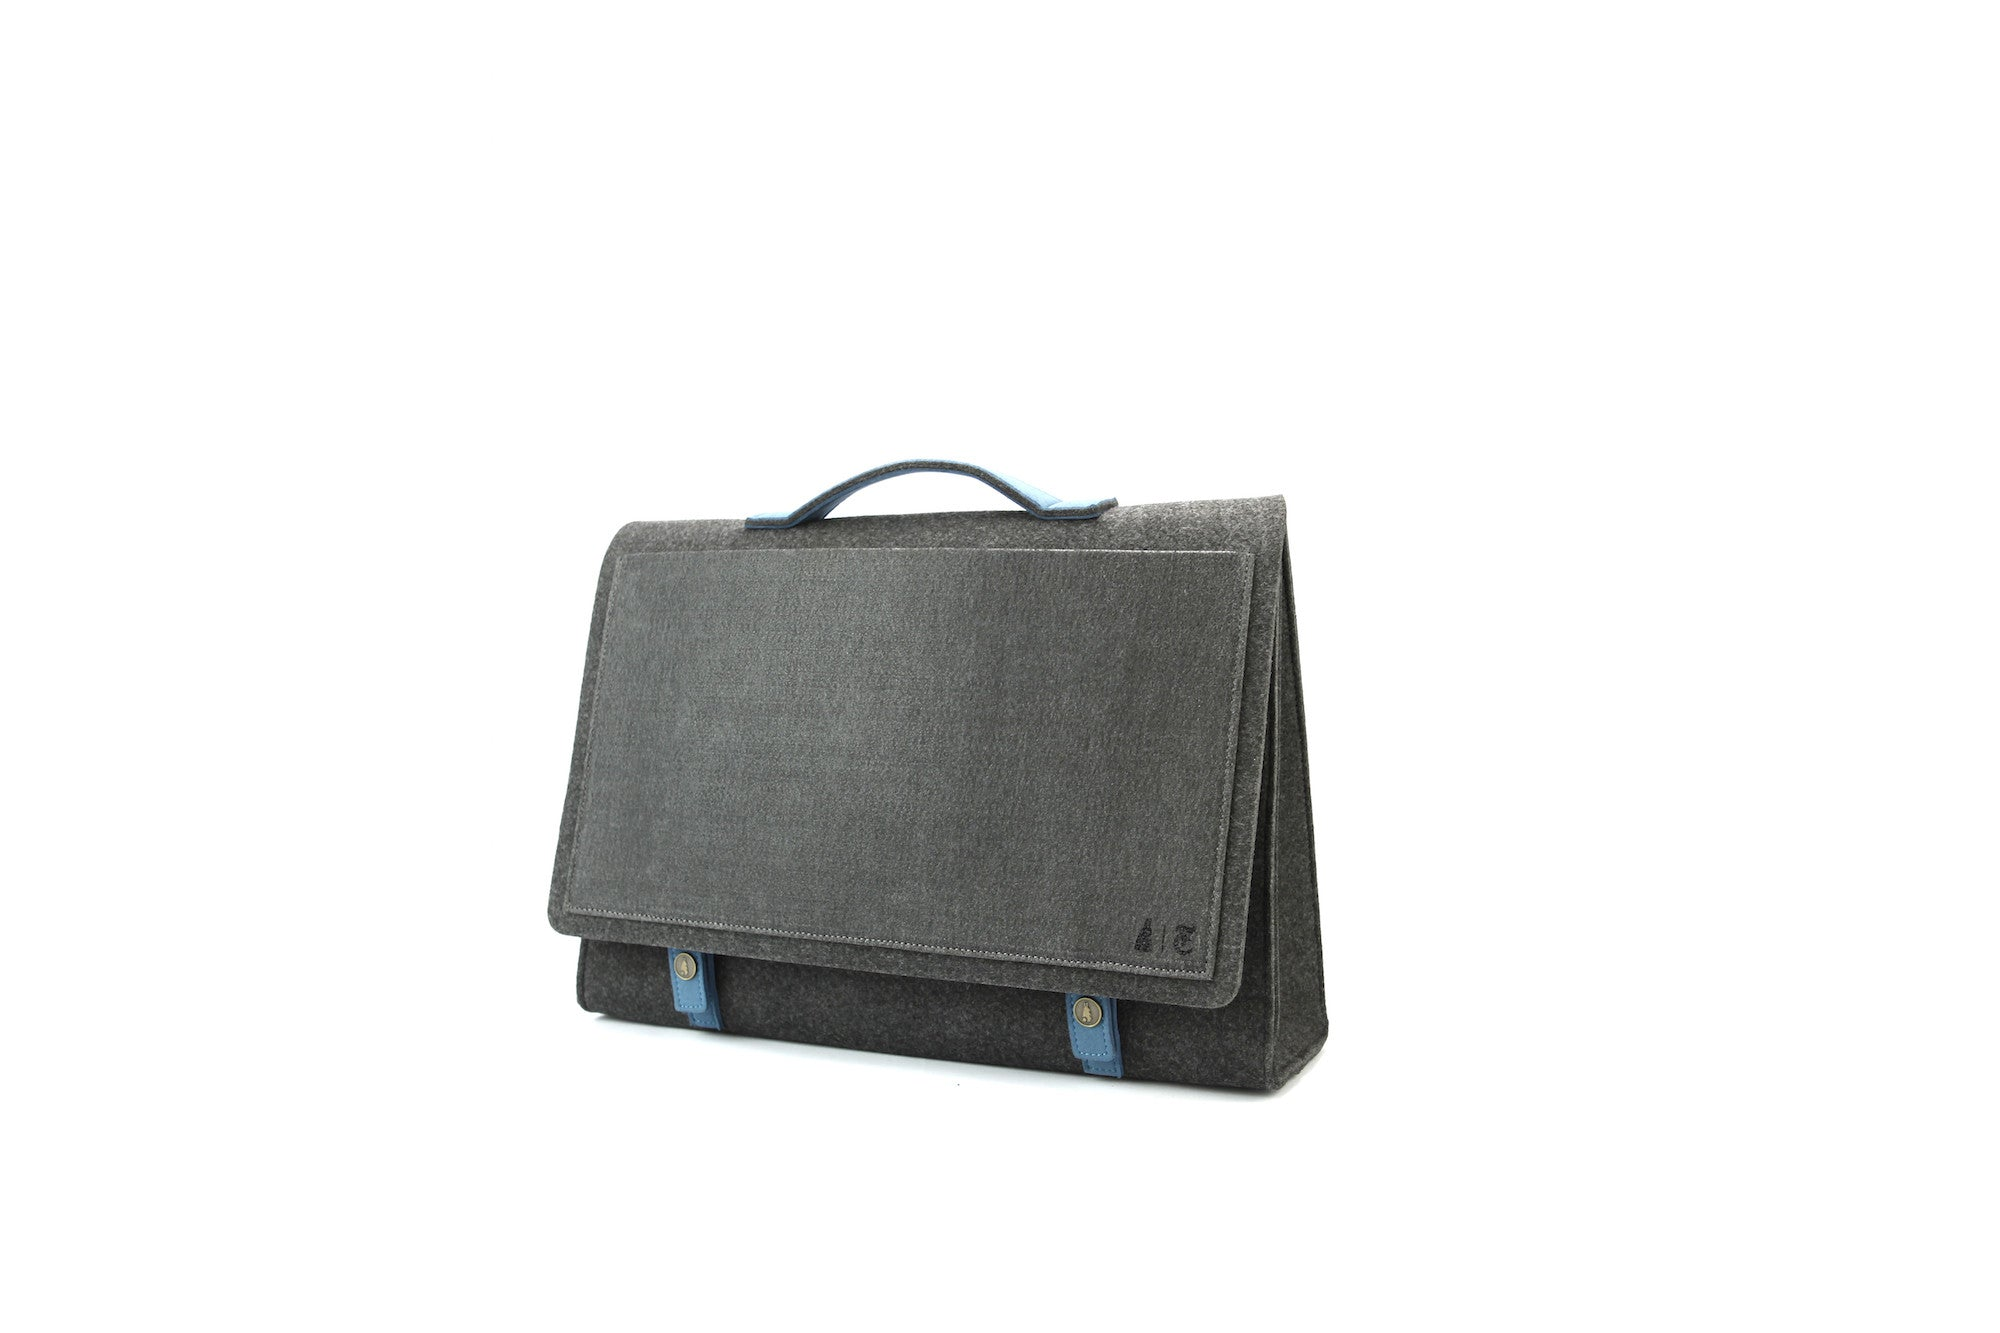 M.R.K.T. for NYT - Manhattan Briefcase - M.R.K.T. - 1